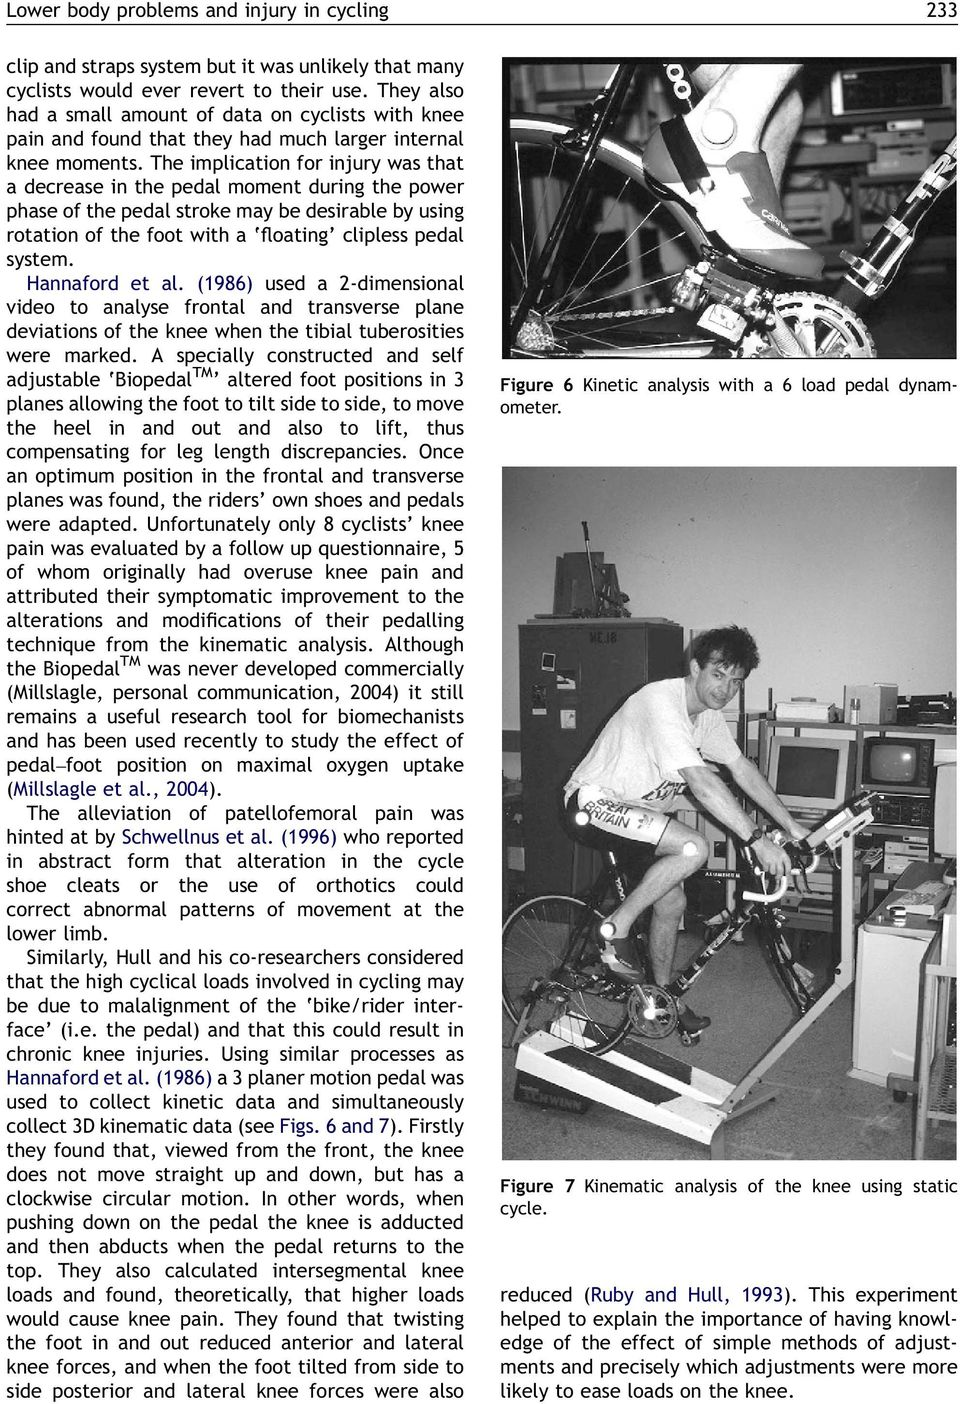 The implication for injury was that a decrease in the pedal moment during the power phase of the pedal stroke may be desirable by using rotation of the foot with a floating clipless pedal system.